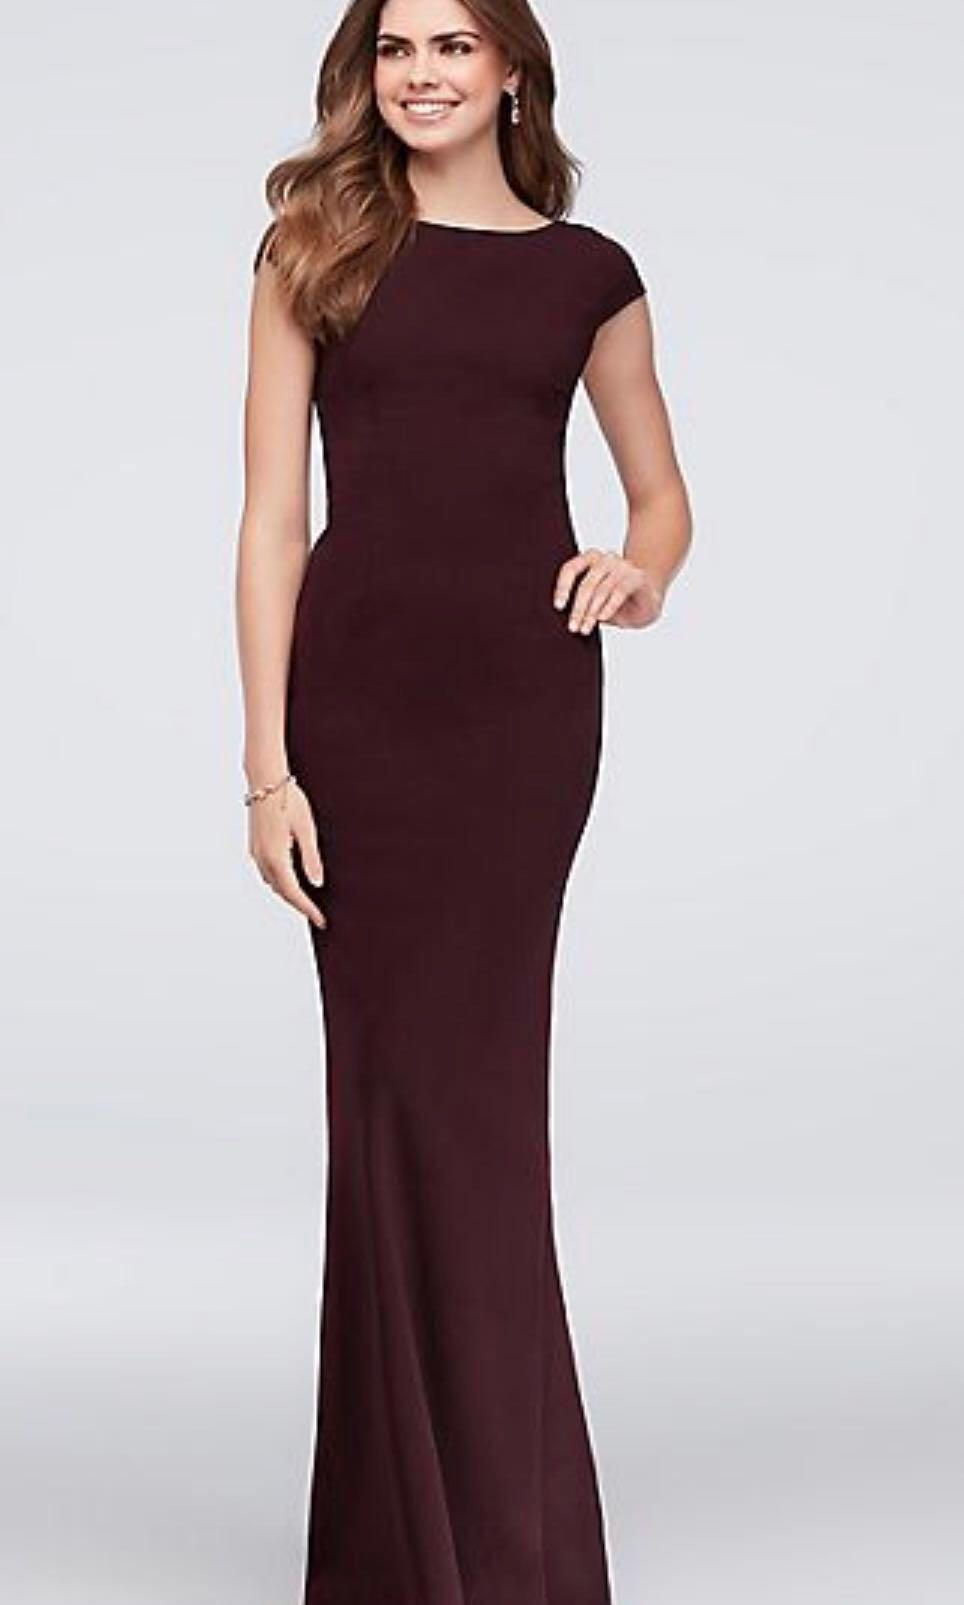 David's Bridal Cap-Sleeve Crepe Sheath Gown with Deep-V Bow Back - Prom/Bridesmaid's Dress - Wine - Size 6